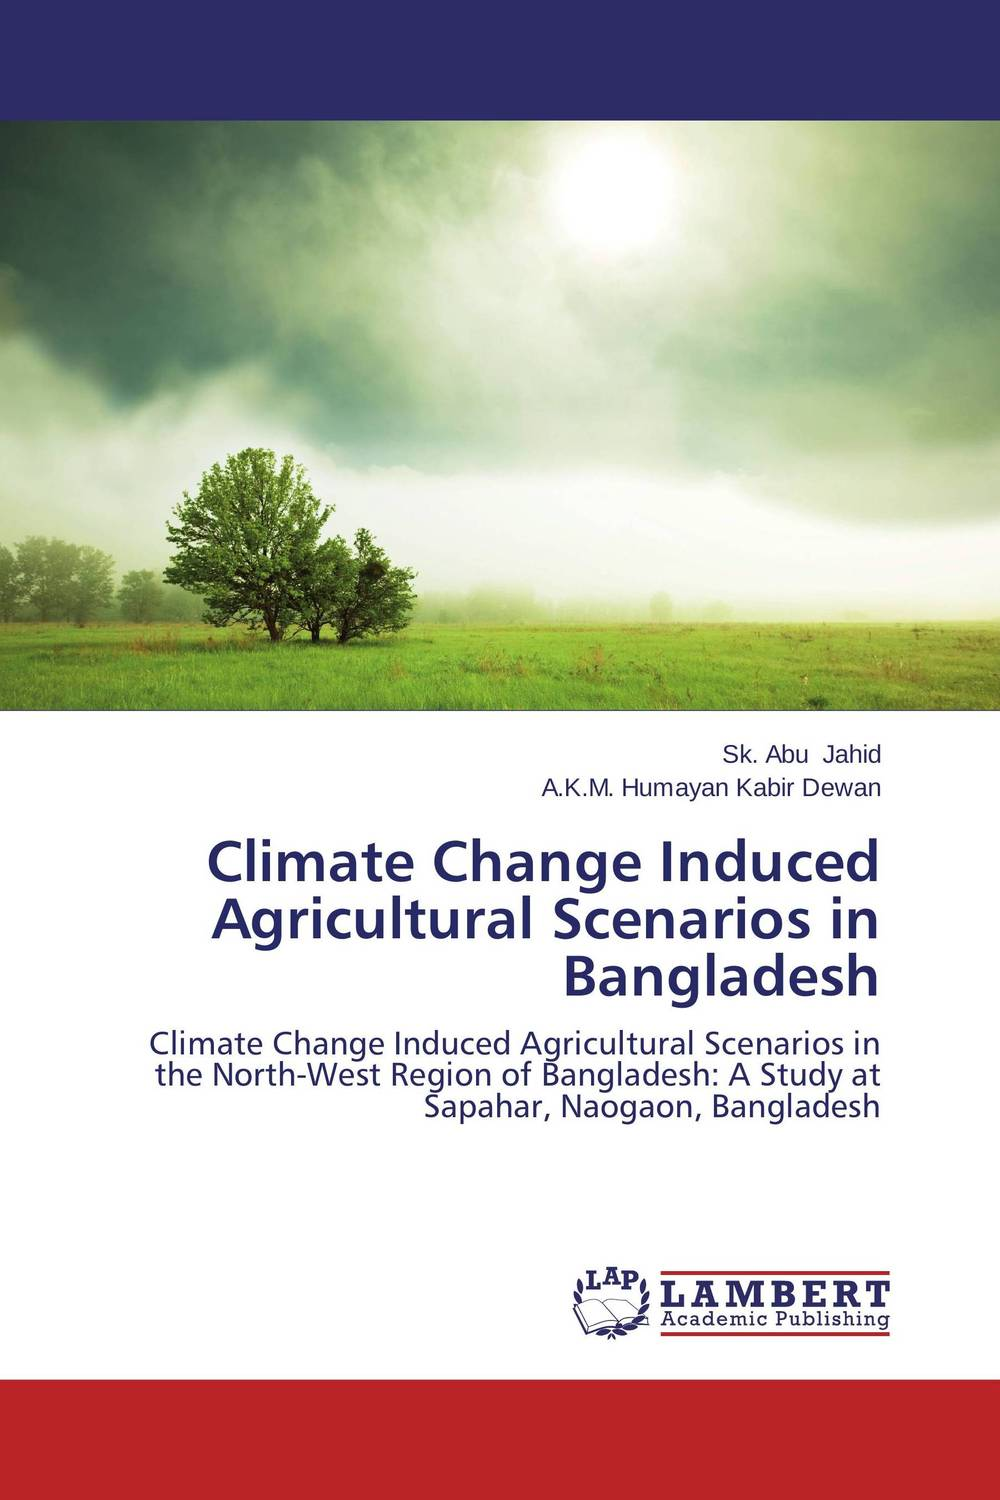 Фото Climate Change Induced Agricultural Scenarios in Bangladesh cervical cancer in amhara region in ethiopia